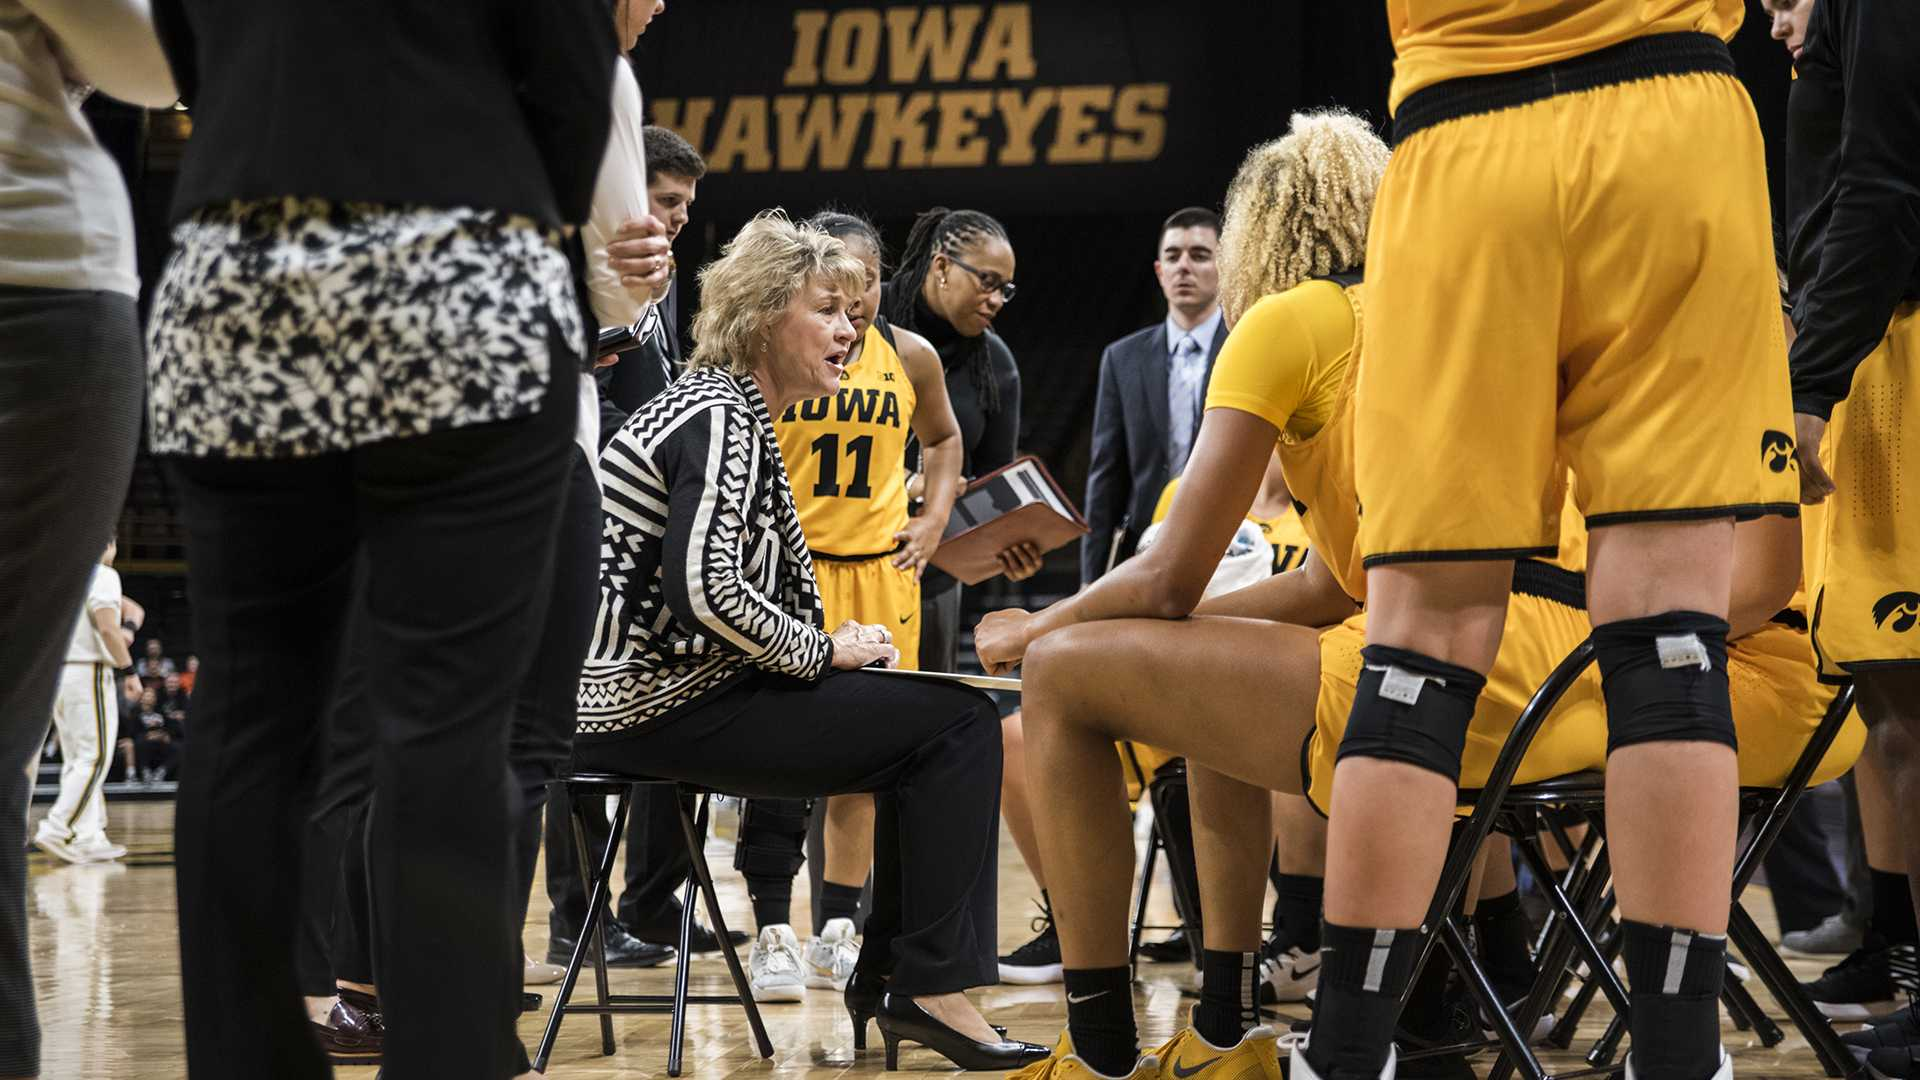 Iowa head coach Lisa Bluder takes a timeout during the women's basketball game between Iowa and Minnesota State at Carver-Hawkeye Arena on Sunday, Nov. 5, 2017. The Hawkeyes beat the Dragons 85-56. (Ben Smith/The Daily Iowan)